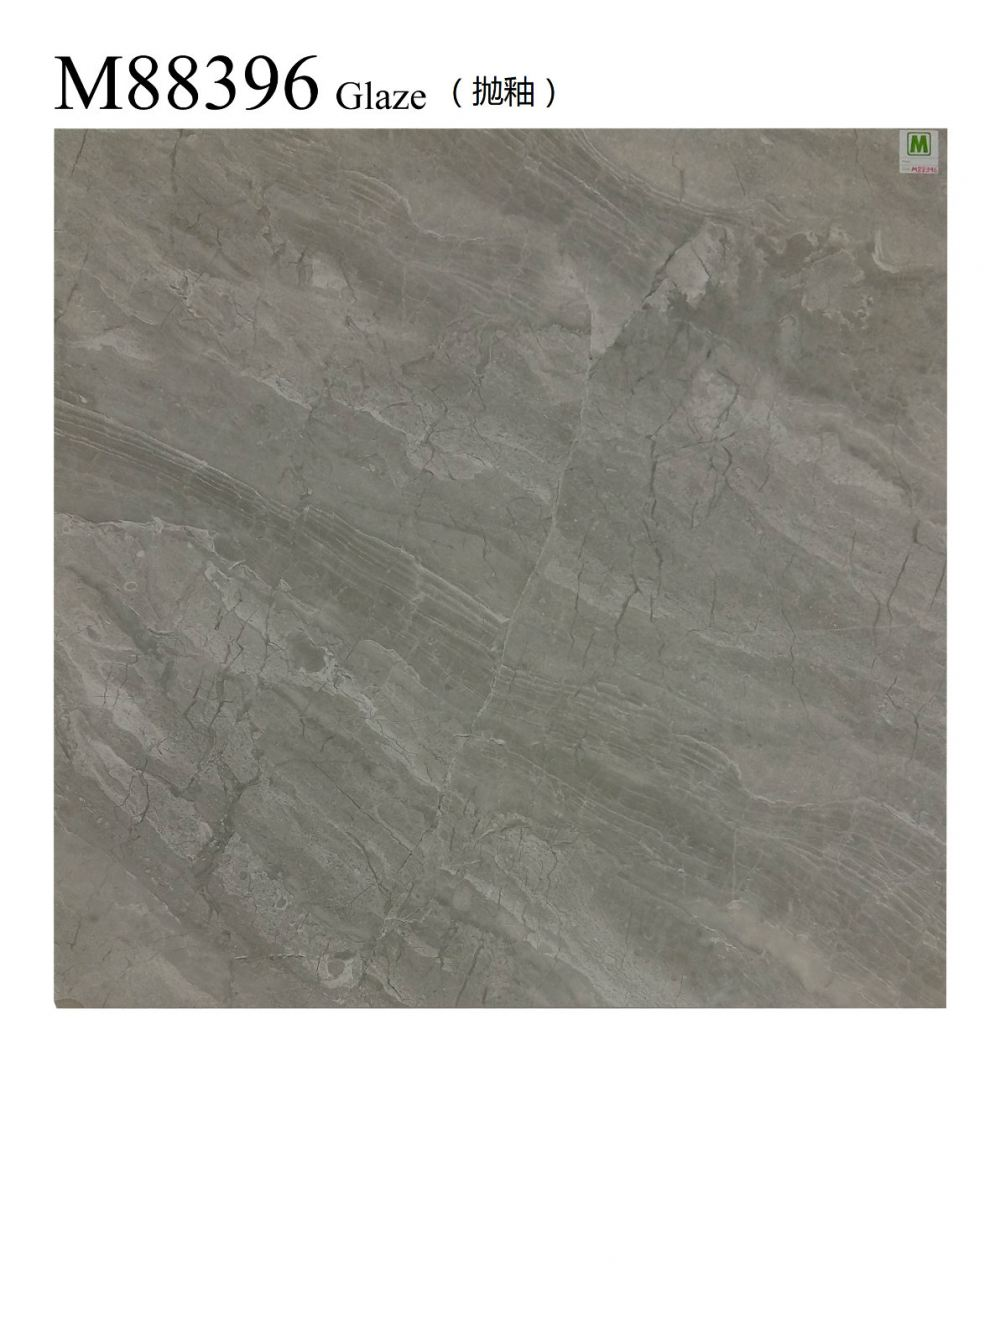 M88396 FLOOR TILES TILE Supplier, Suppliers, Supply, Supplies ~ Itoli Ceramic Sdn Bhd